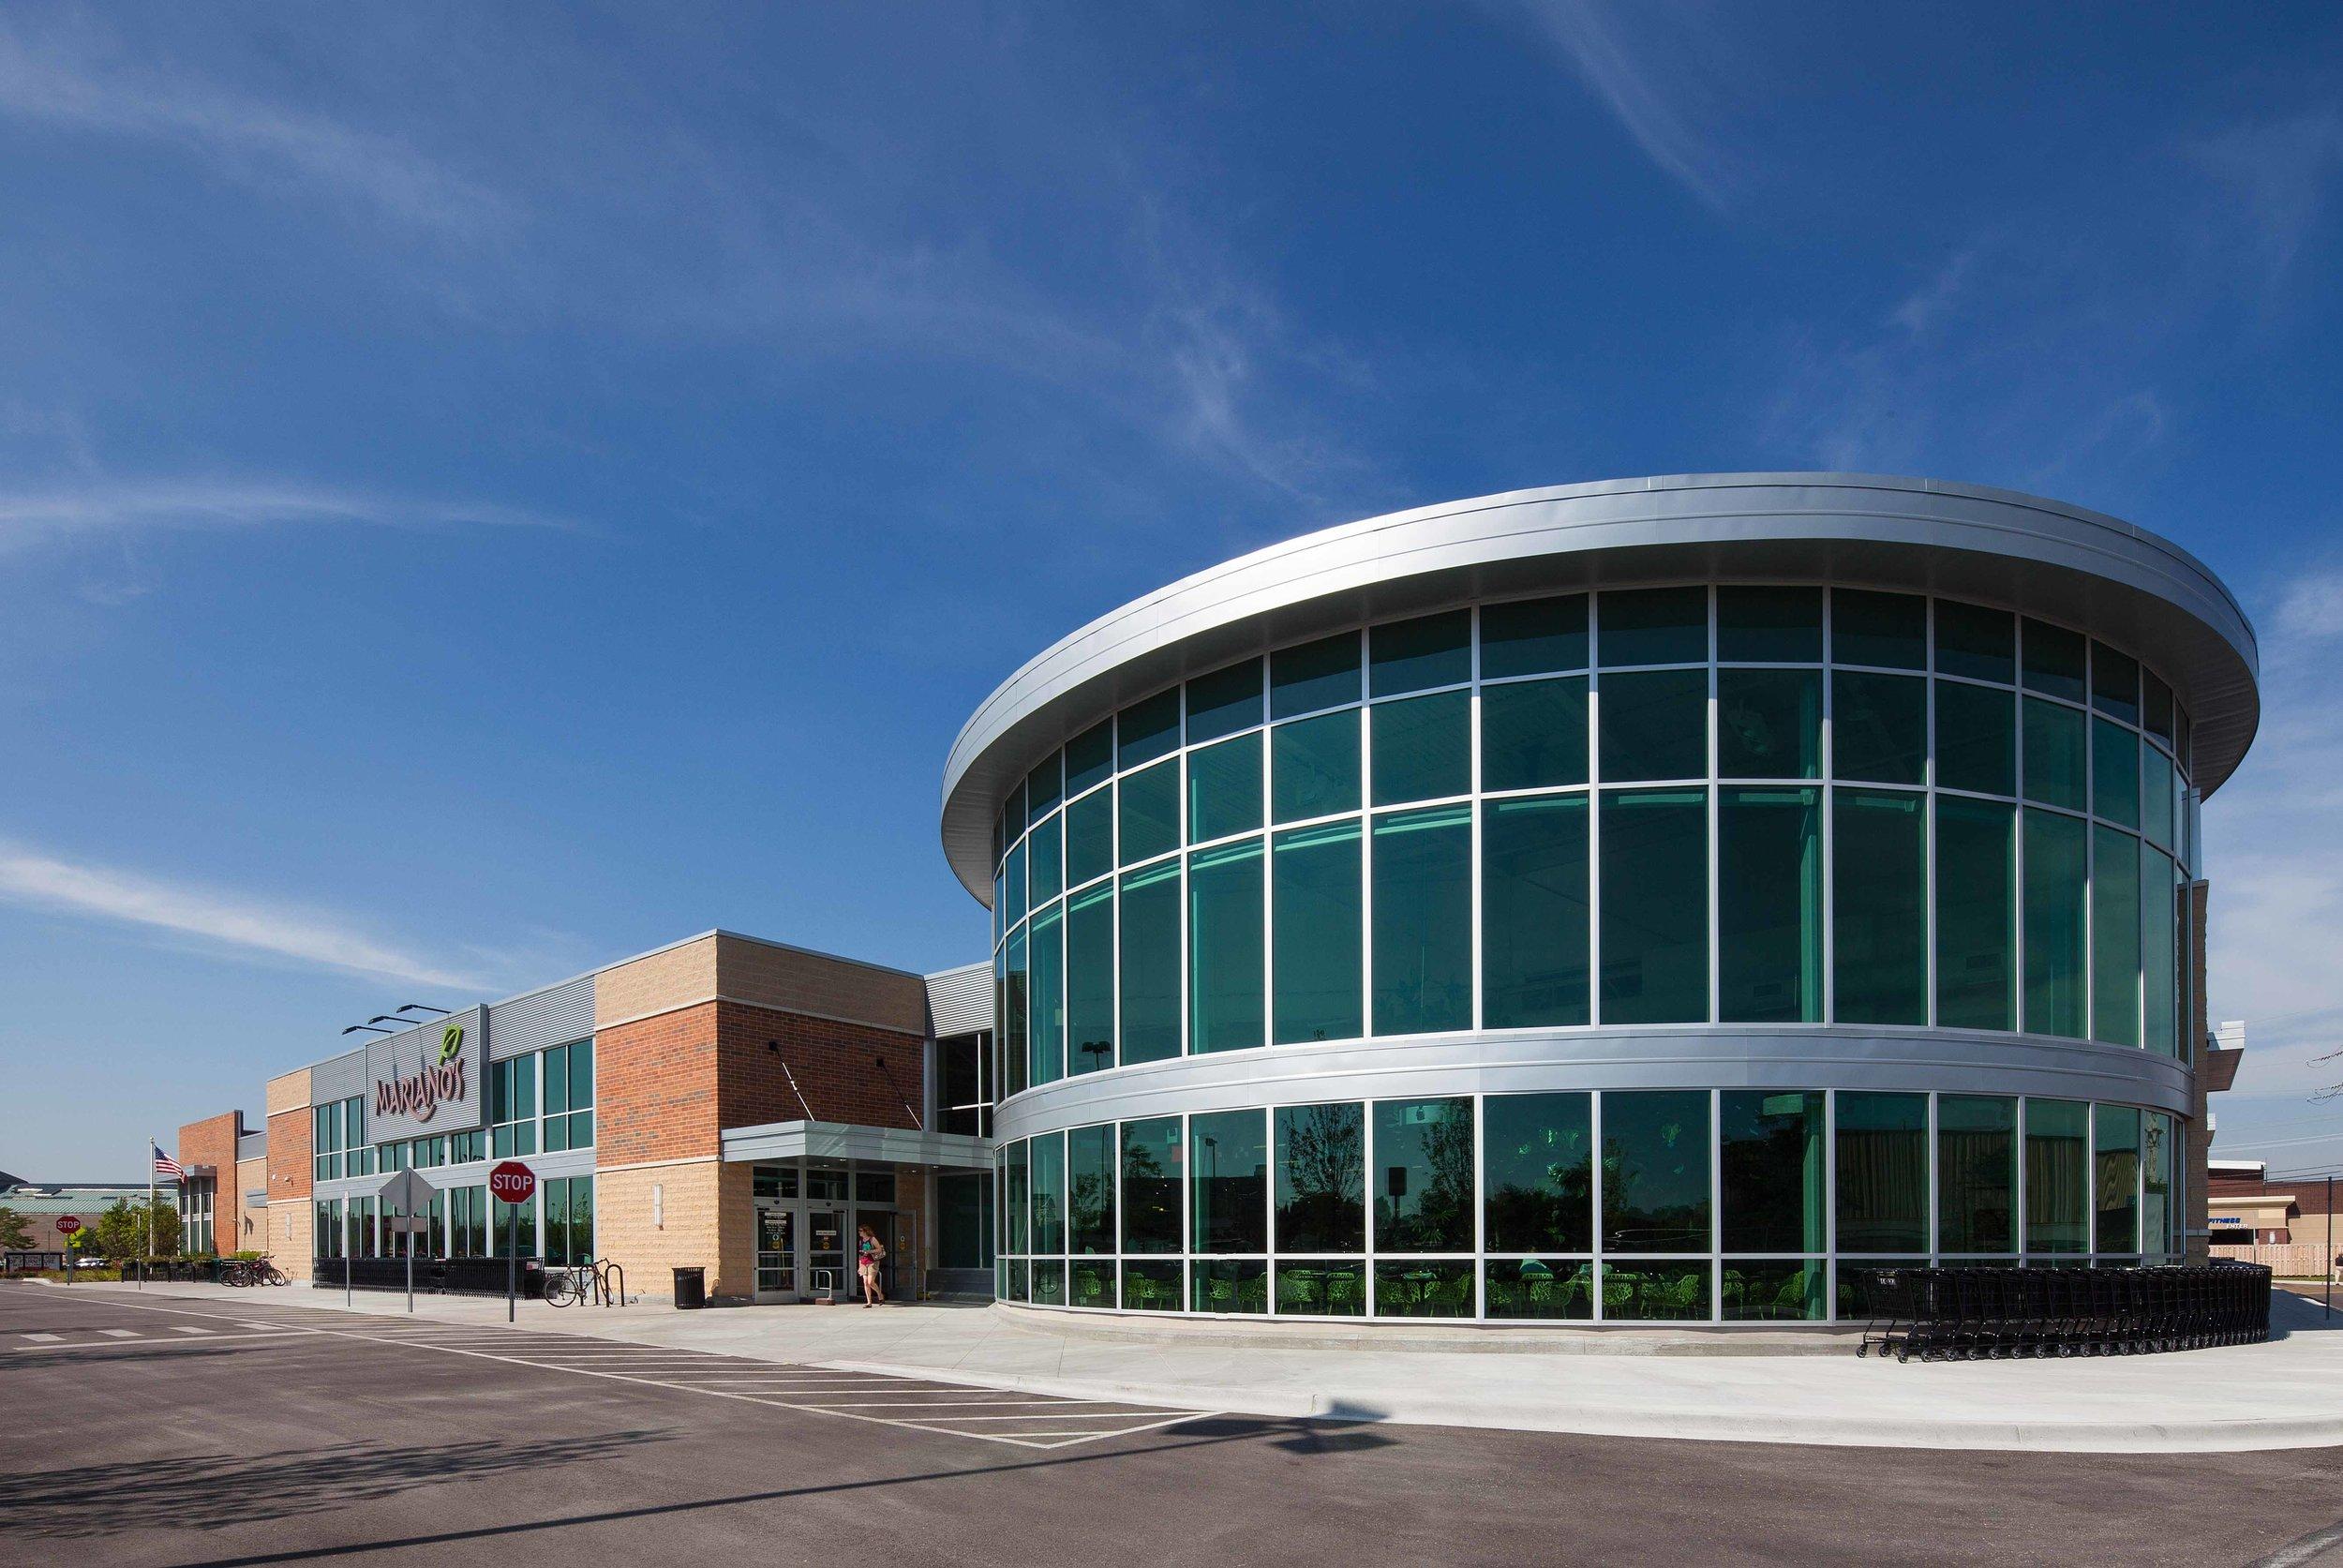 Skokie Commons - Lambros Photo Shoot - 07.31.2015 - 08.04.2015 - 7.jpg